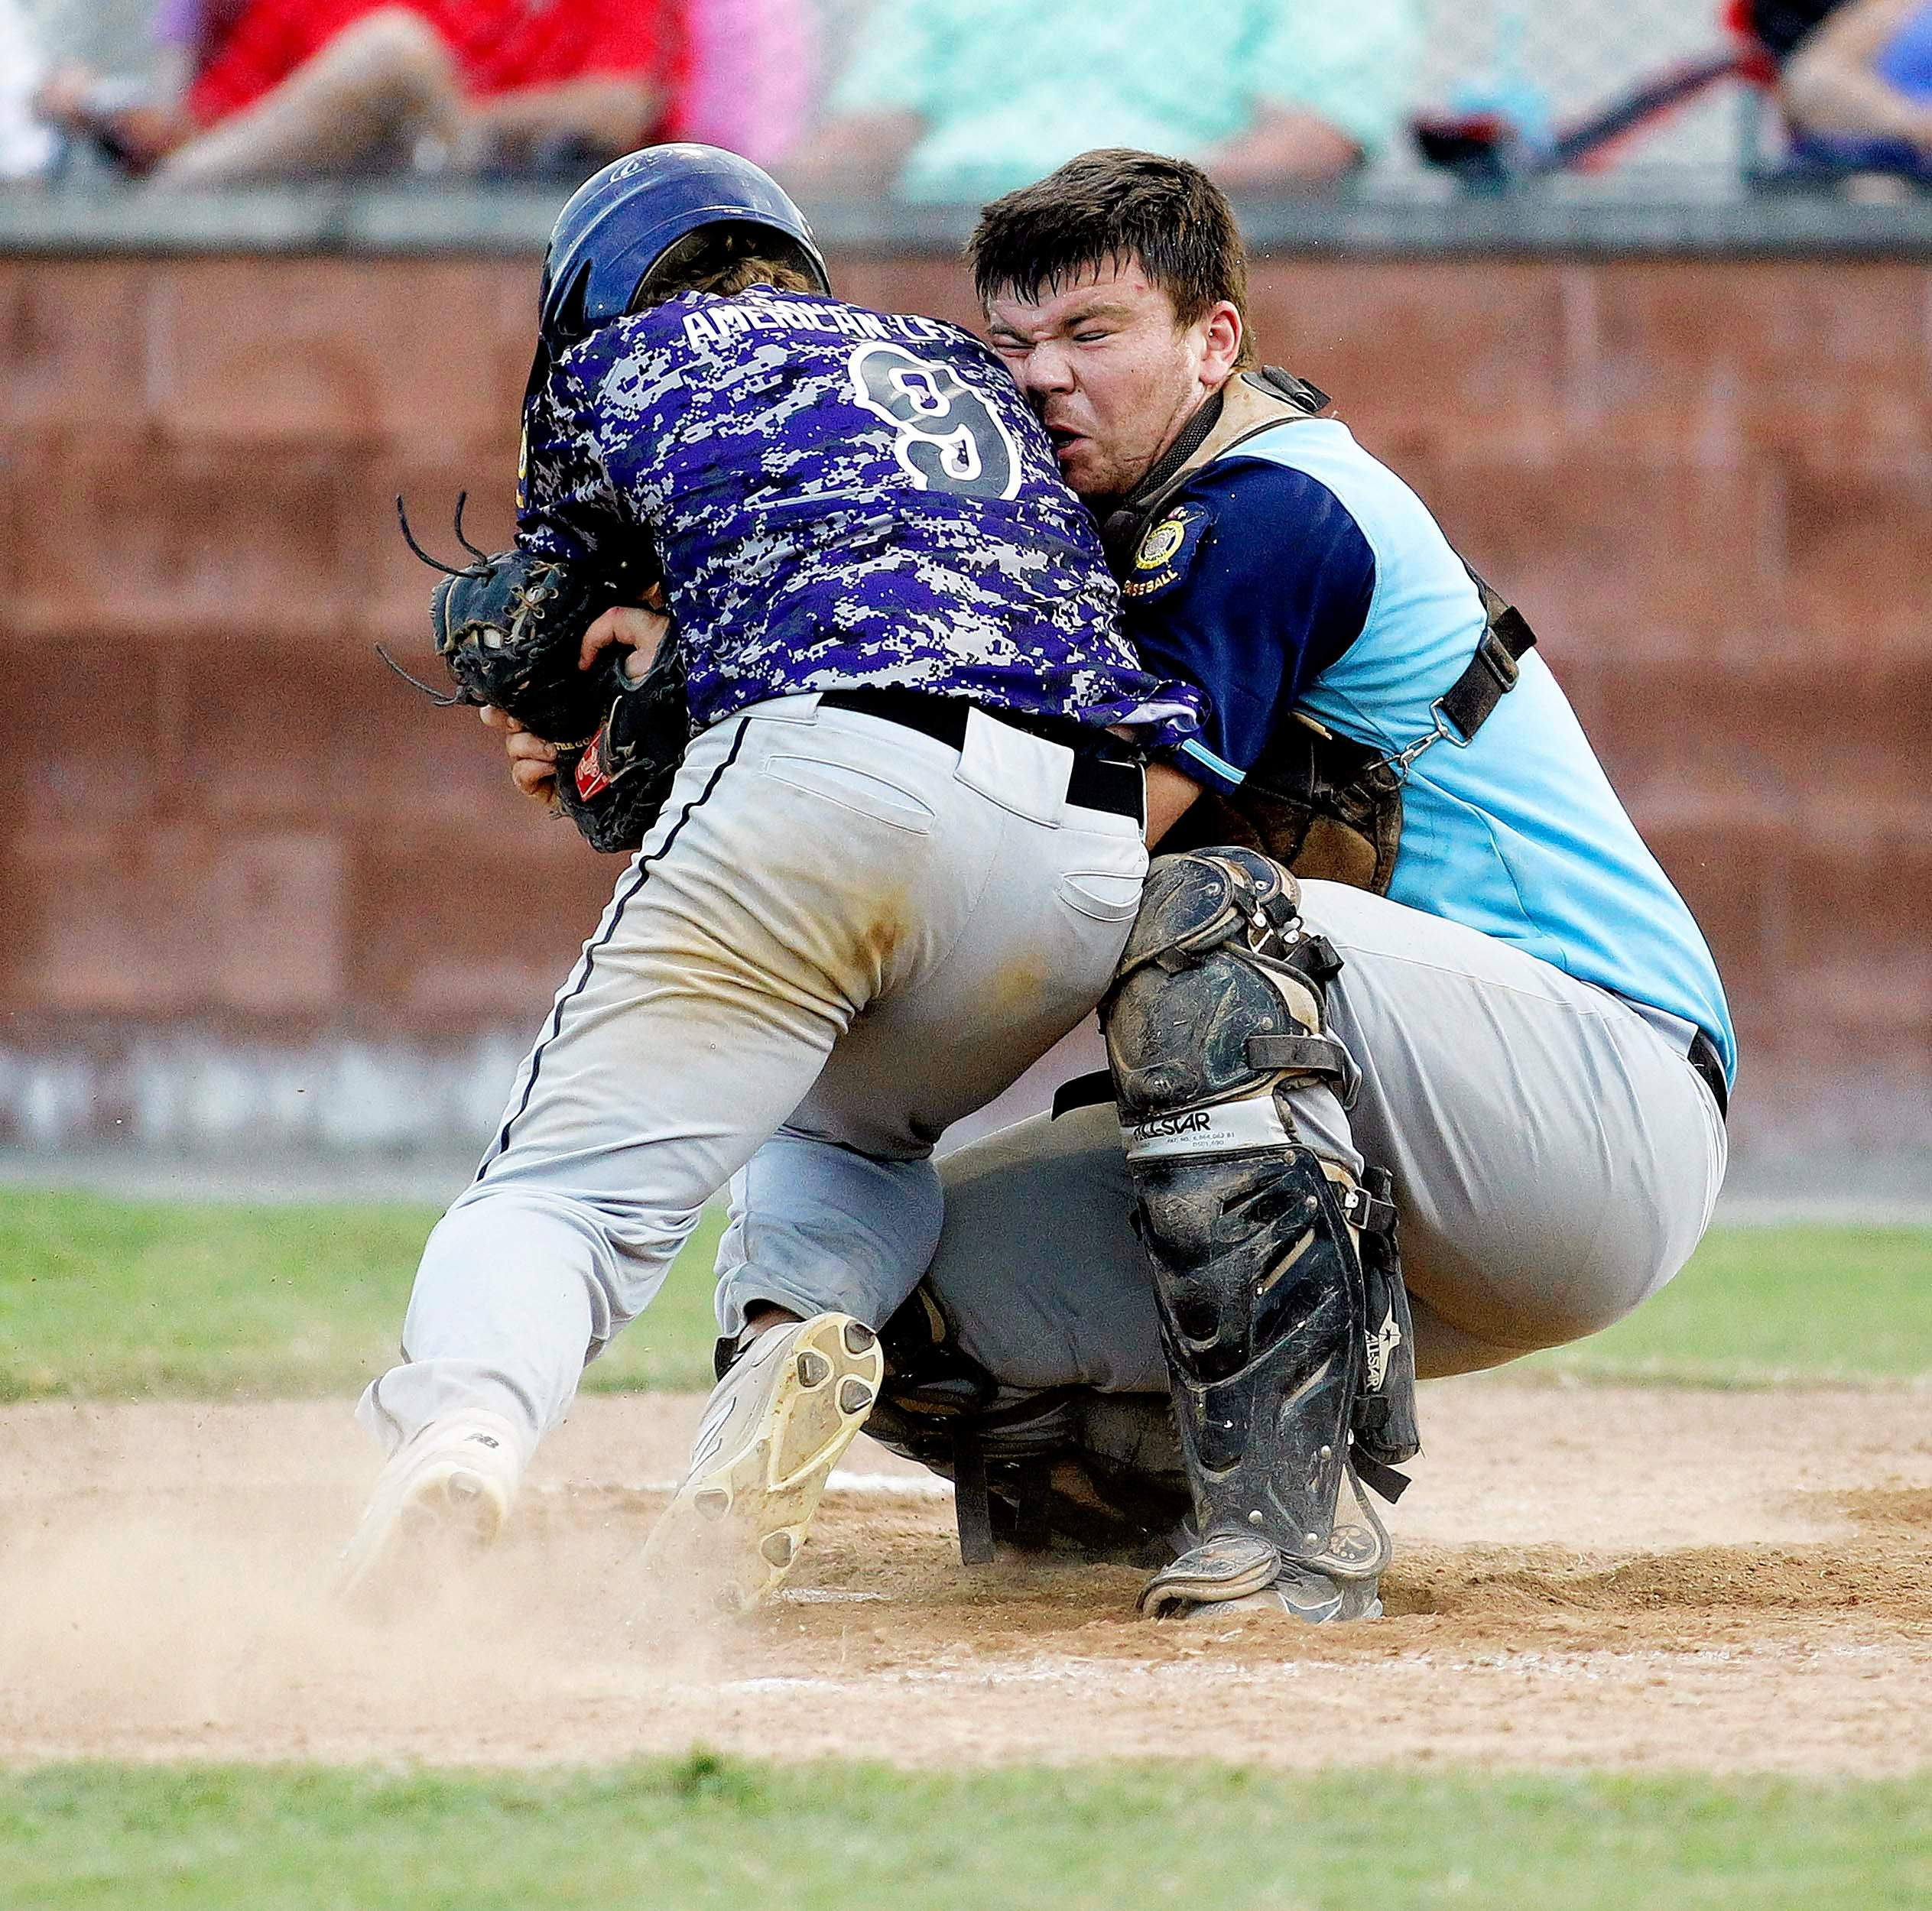 """Michael """"Spyder"""" Dann won a second place from The Associated Press for this photo of Harrisburg Post 167's Bronson Stanley trying to run over Carmi Post 224 catcher Travis Black as Stanley was tagging up on a flyball. Black hung on."""